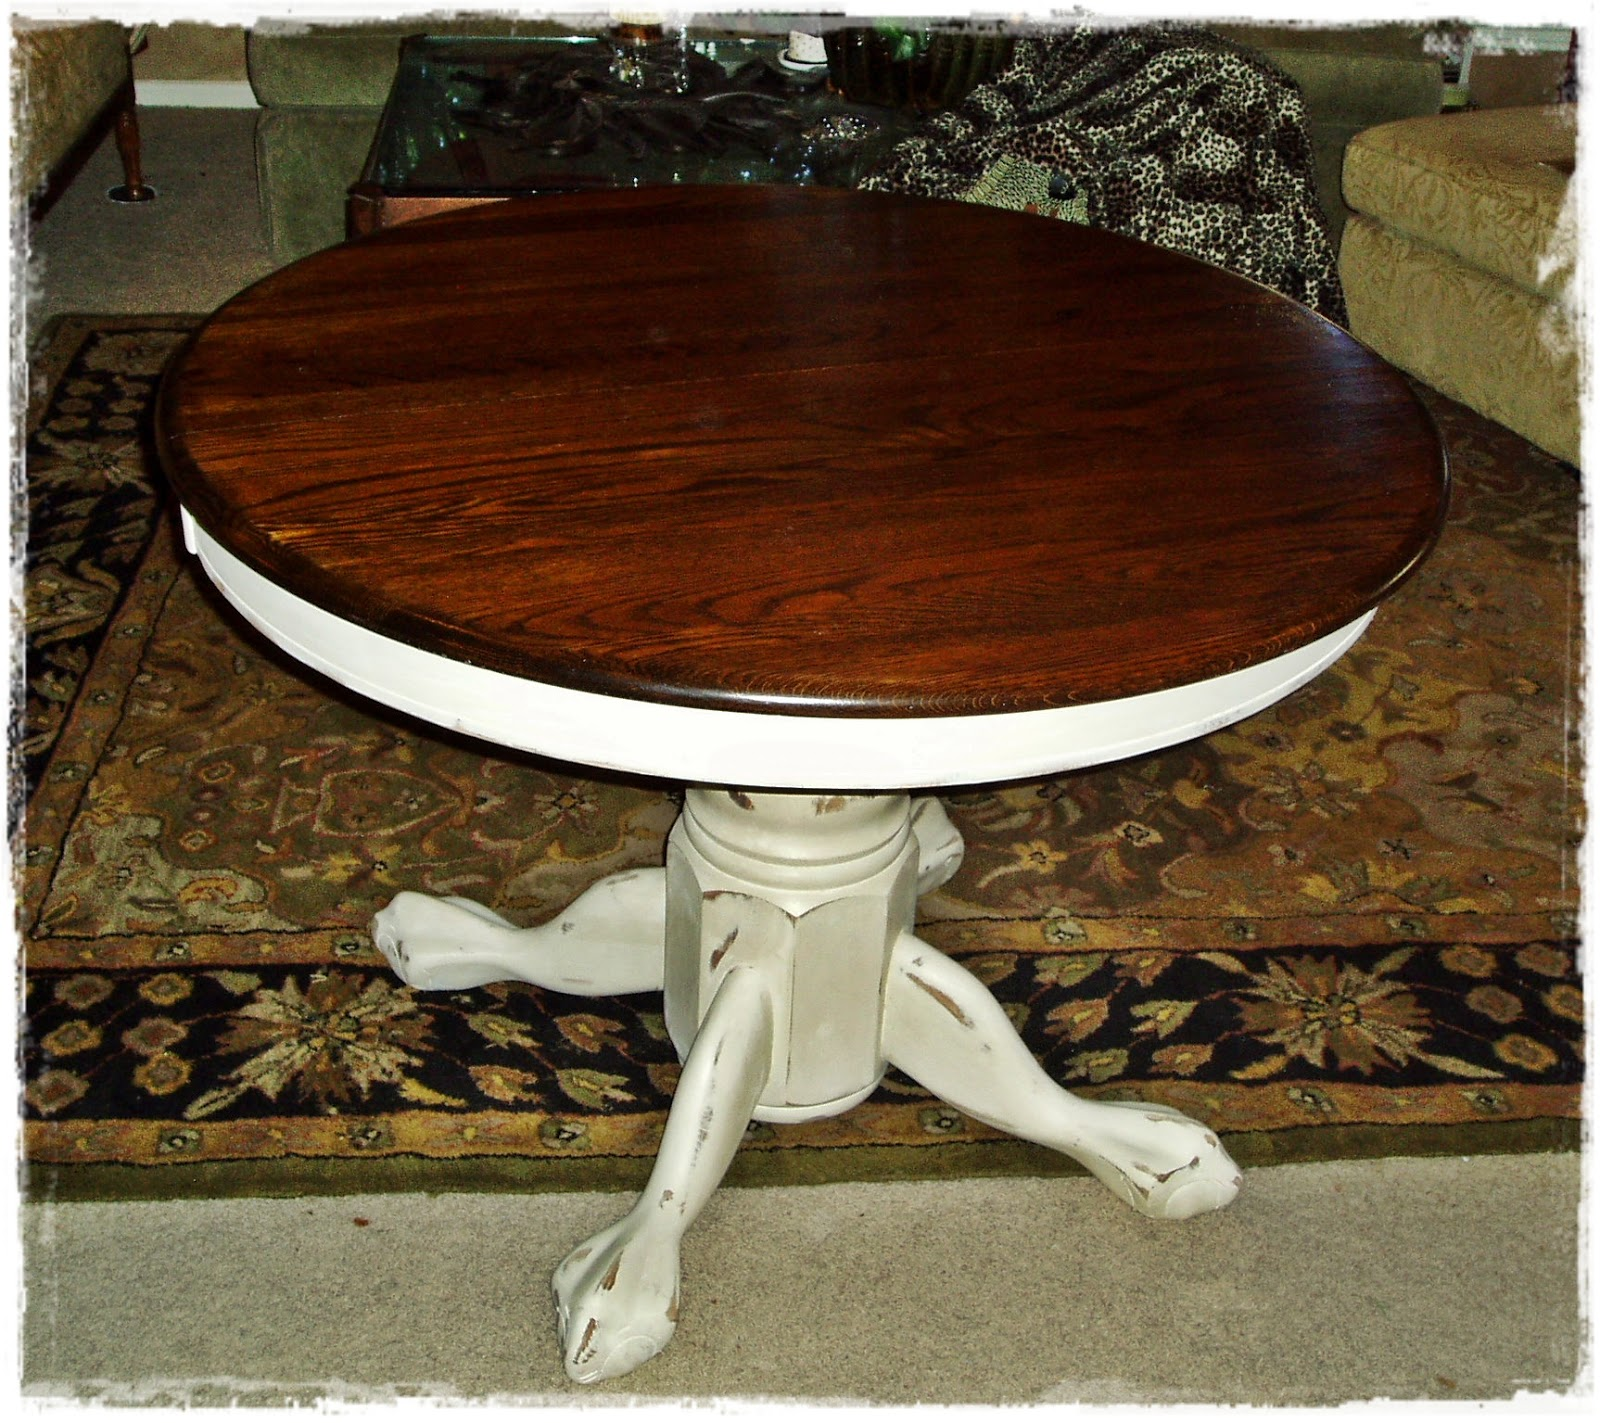 French Country Round Dining Table: Faux Painting + Furniture: French Country Round Pedestal